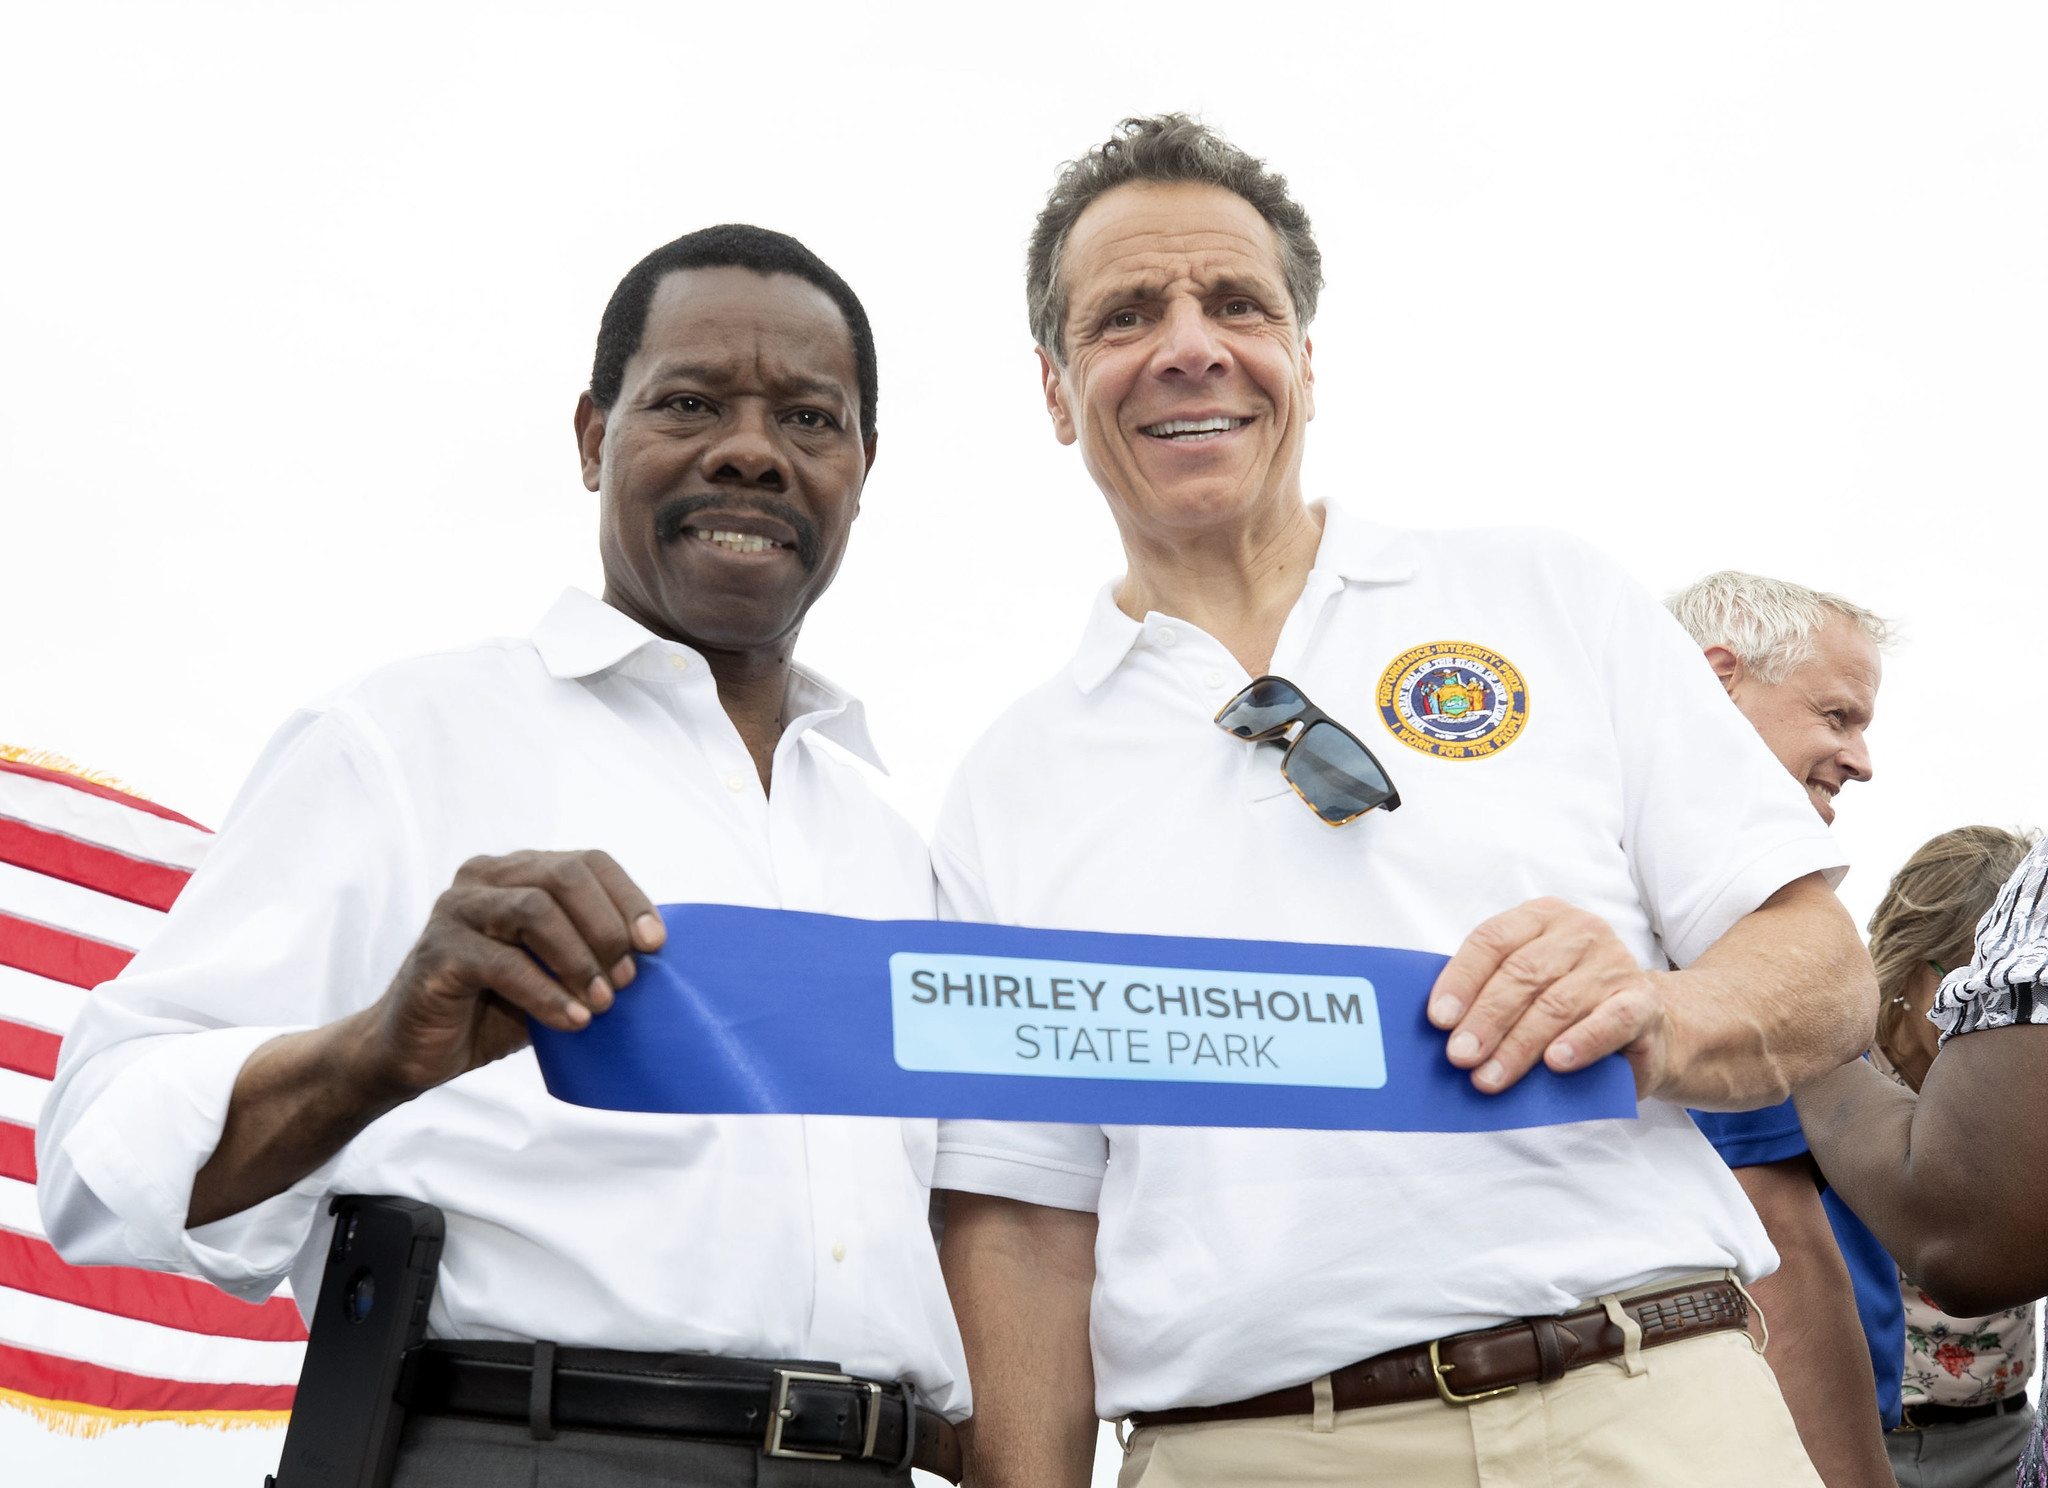 Andrew M. Cuomo, shirley chisholm state park, parks